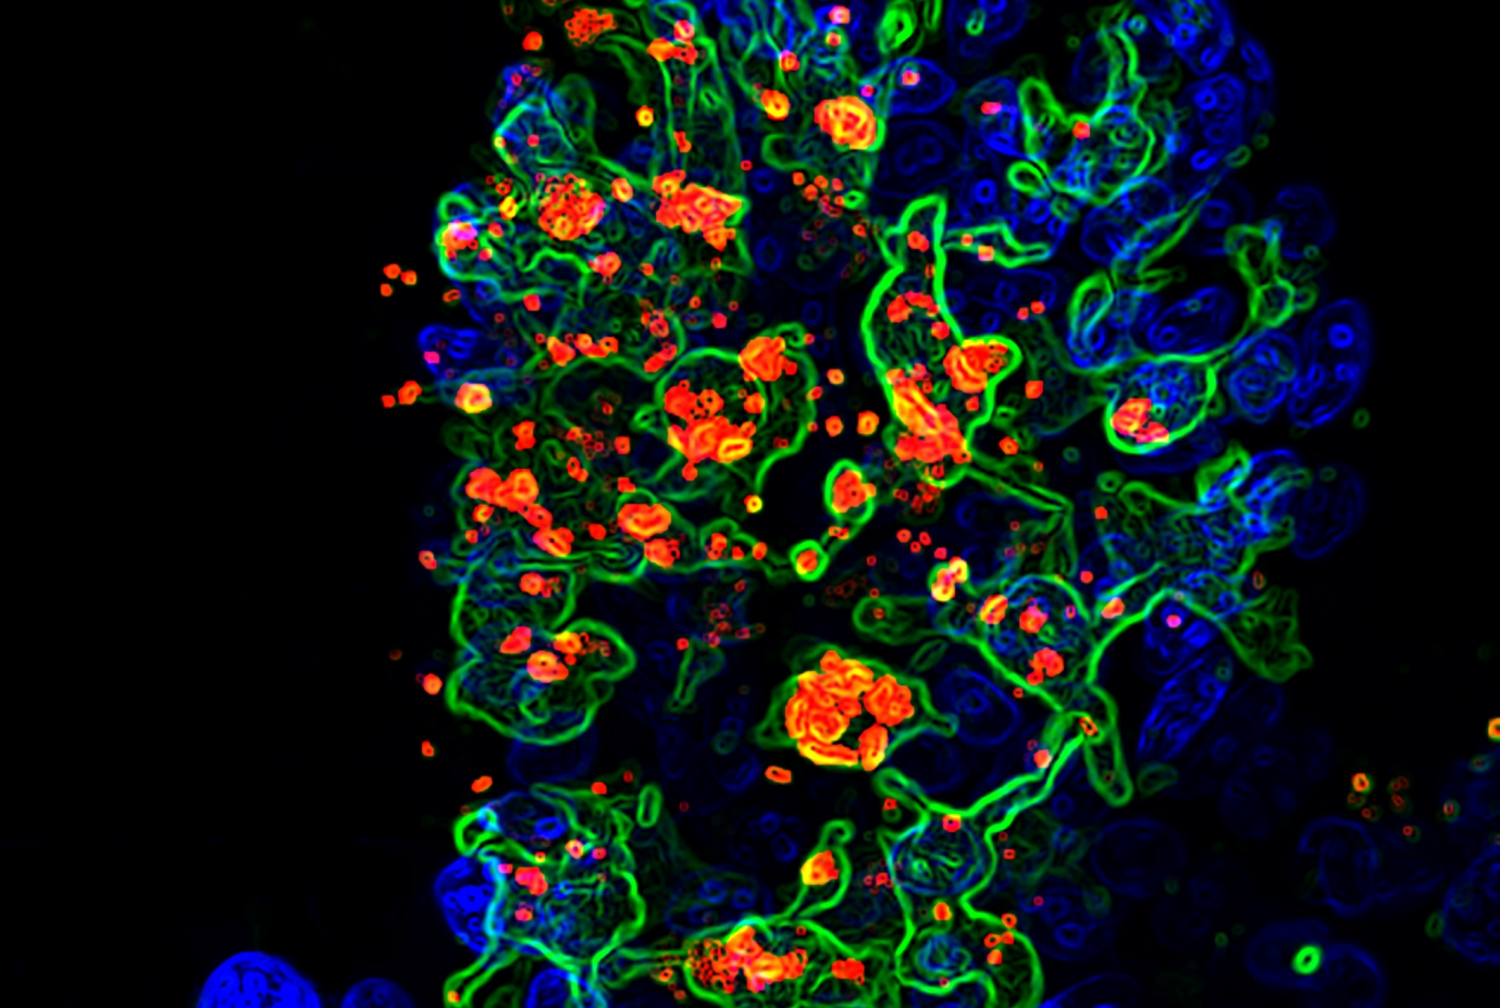 Opportunistic fungus called candida albicans (red) engulfed by CX3CR1+ phagocytes (green) in the gut villi (blue).Photo credit: Dr. Iliyan D. Iliev and Dr. Irina Leoanrdi.